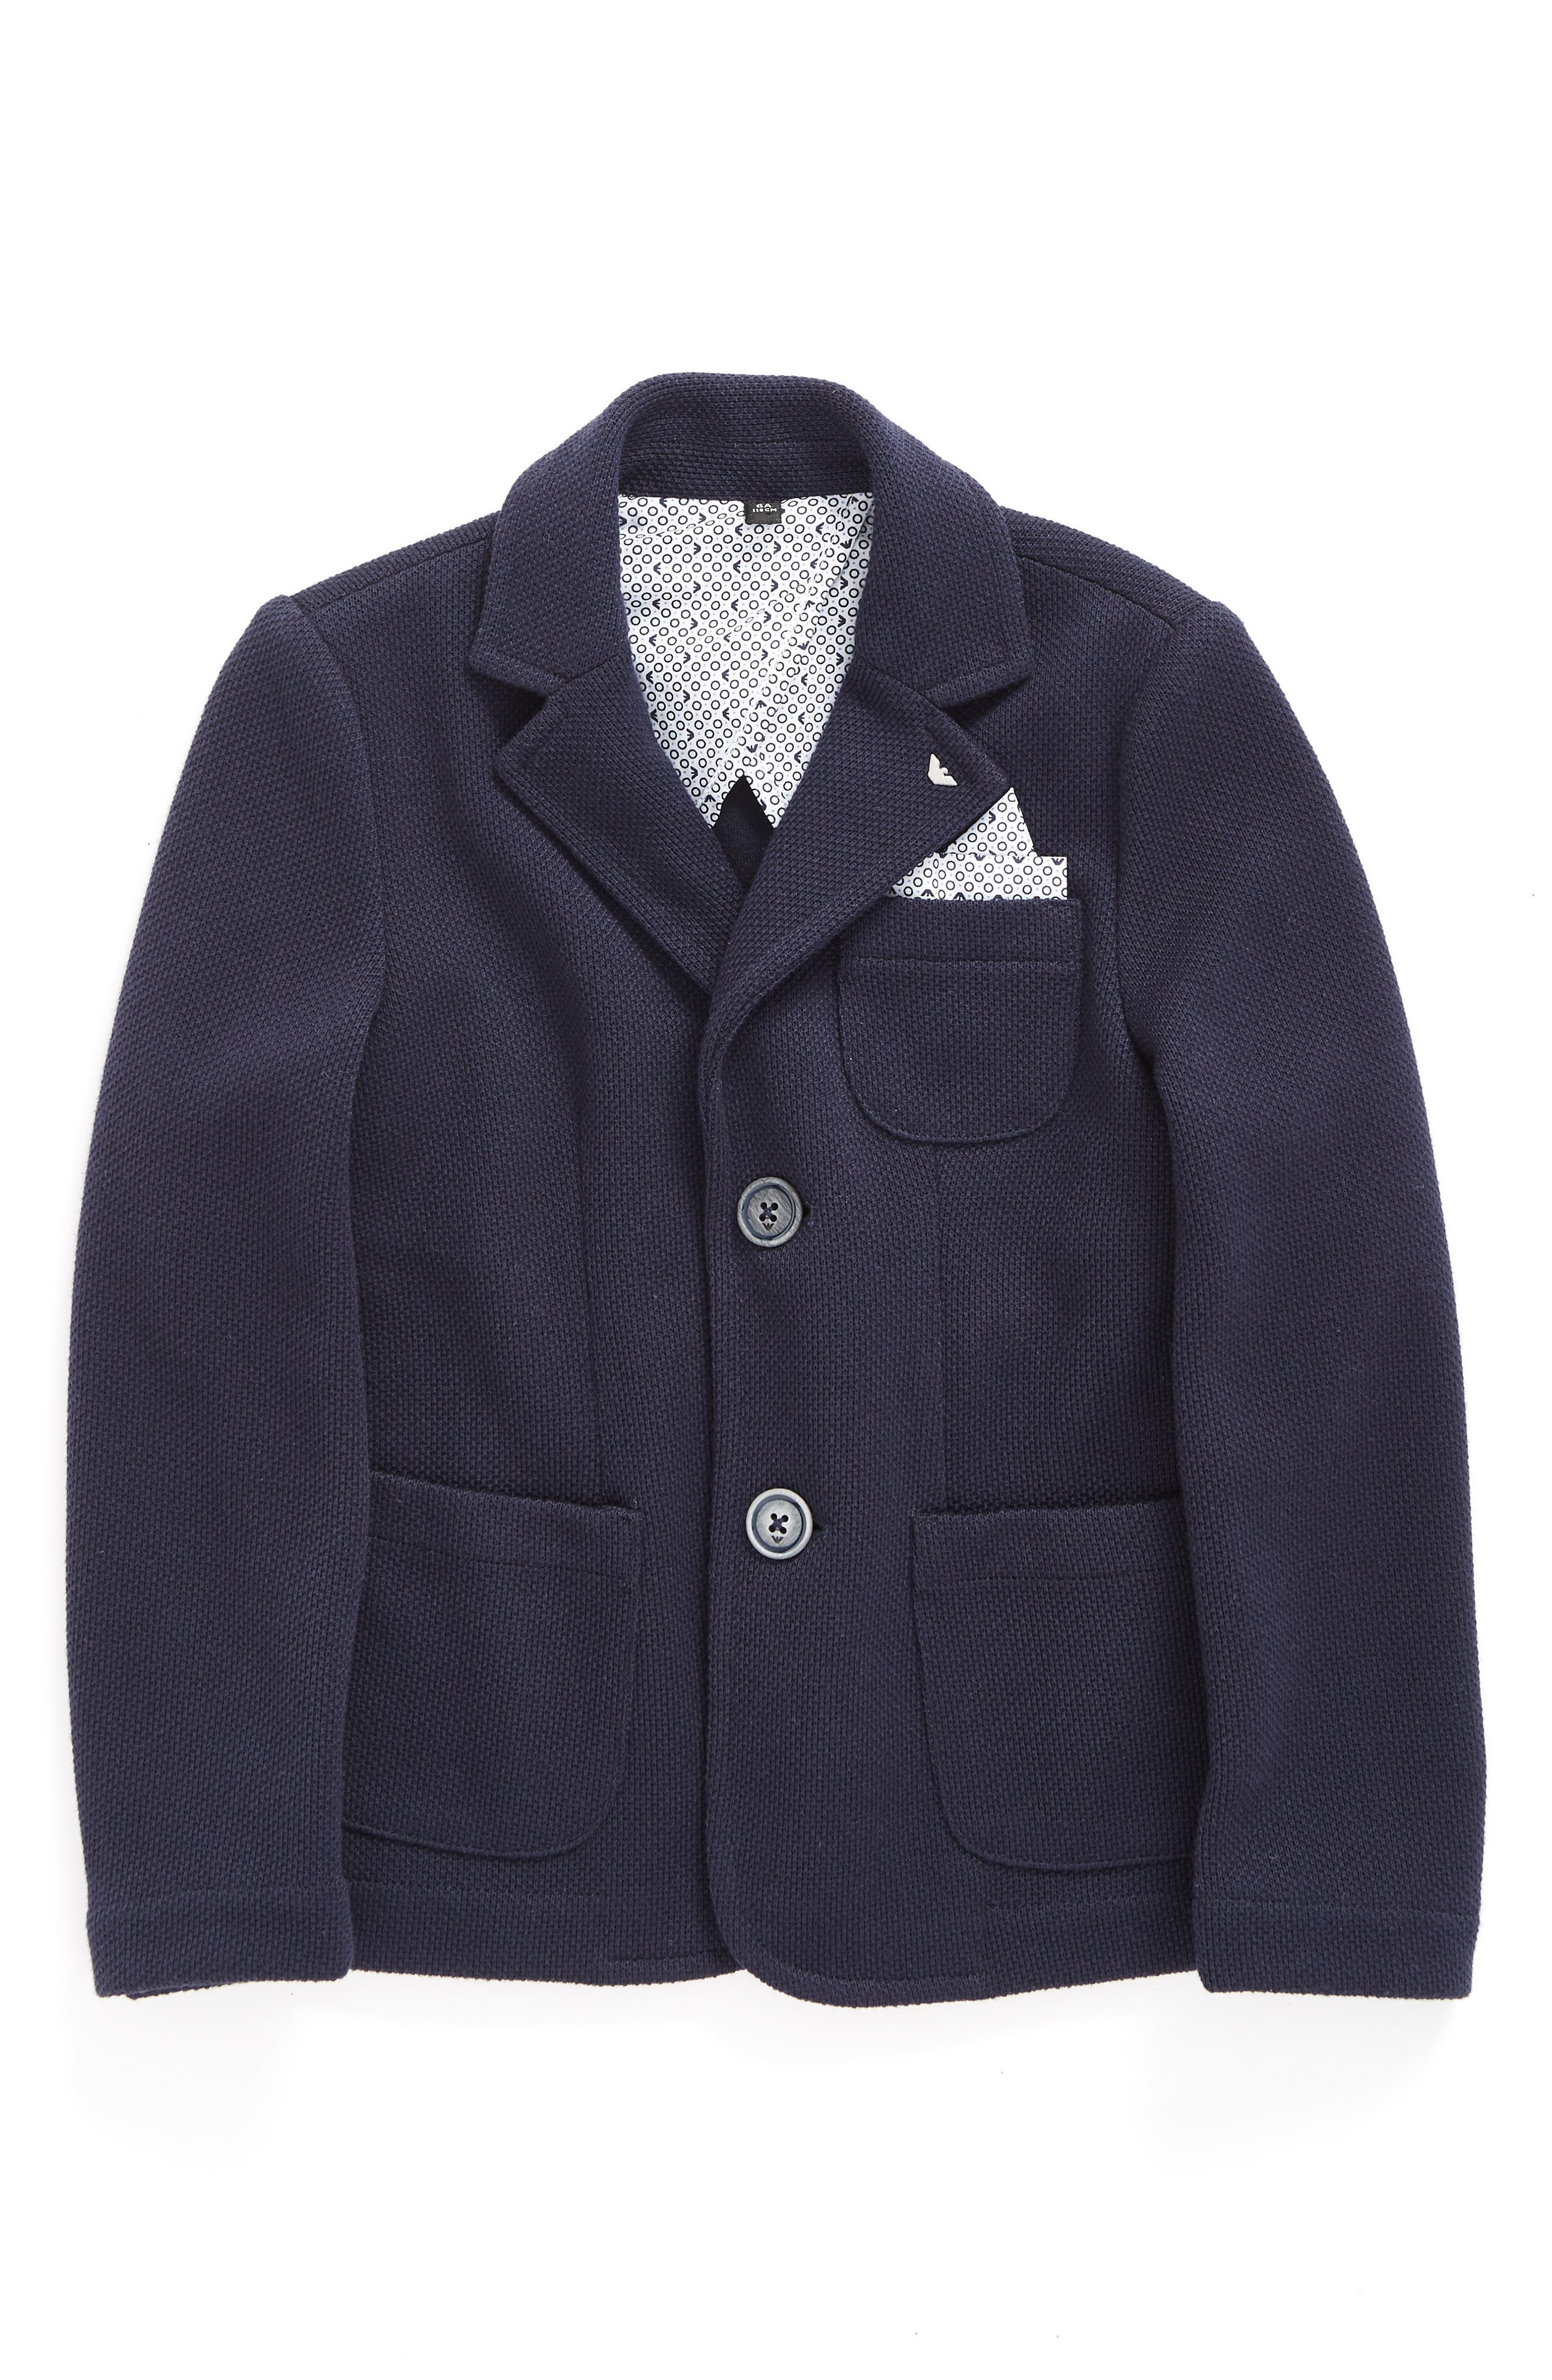 Knit Blazer with Pocket Square,                         Main,                         color, Navy